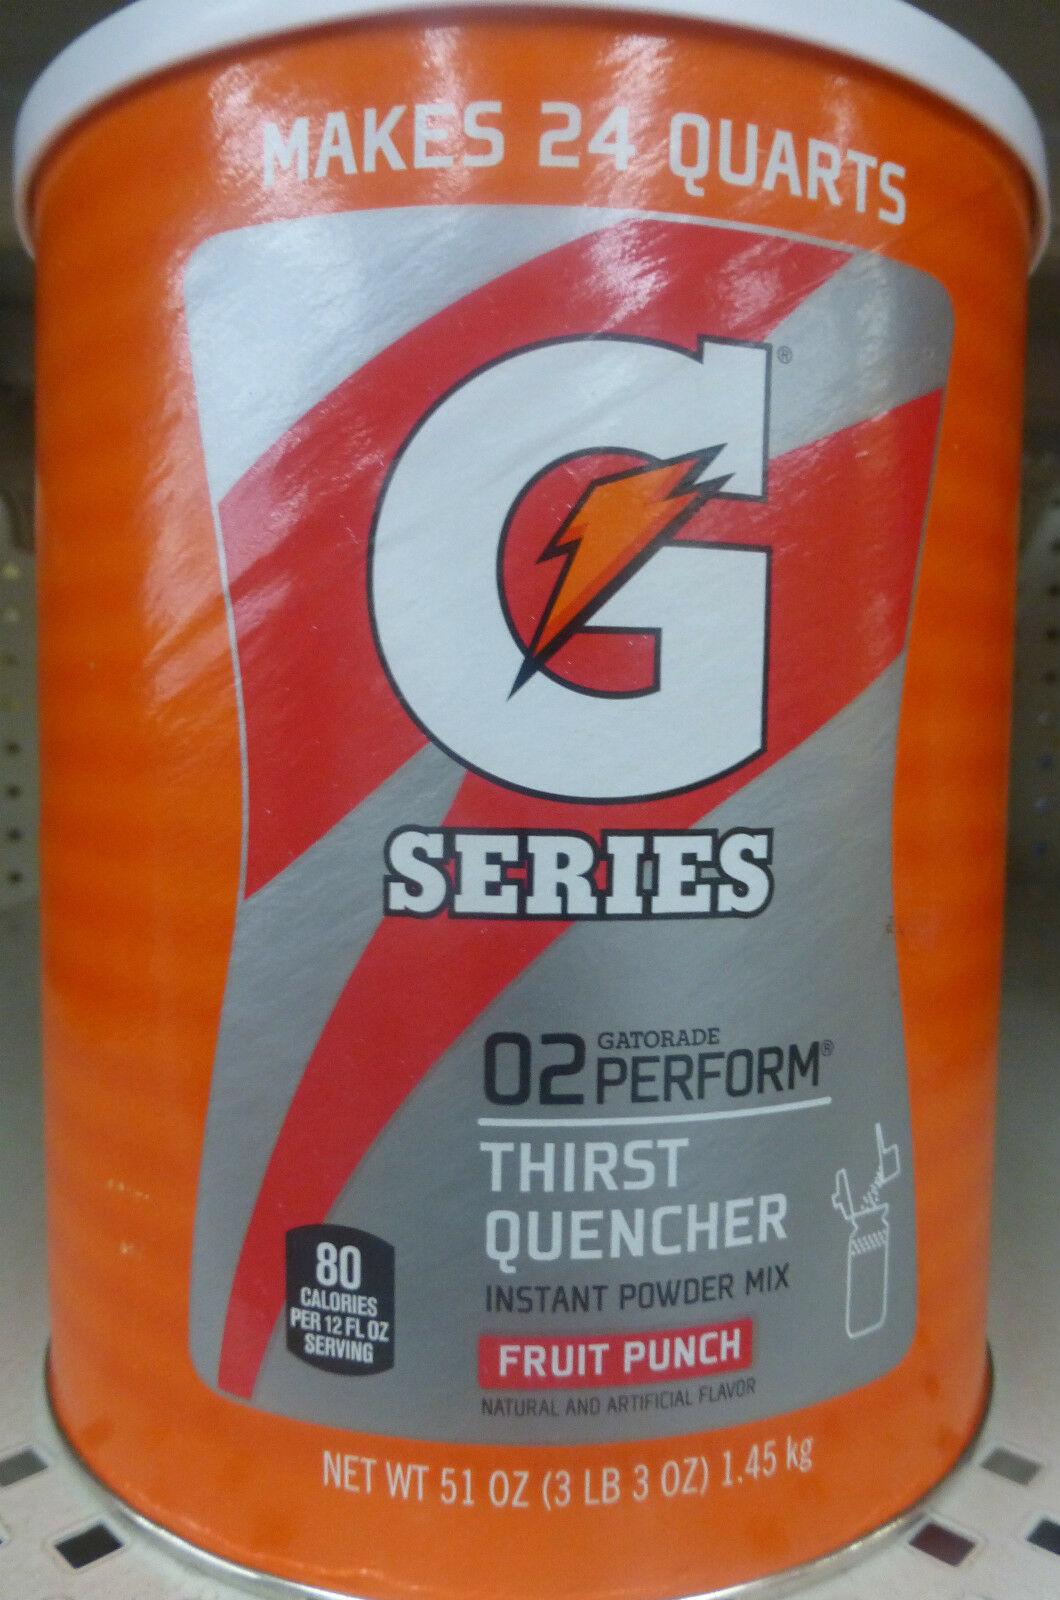 257f1645e58cbf HUGE GATORADE 51 oz Powder Drink Mix FRUIT PUNCH - Makes 24 quarts 1 of  1Only 3 available ...